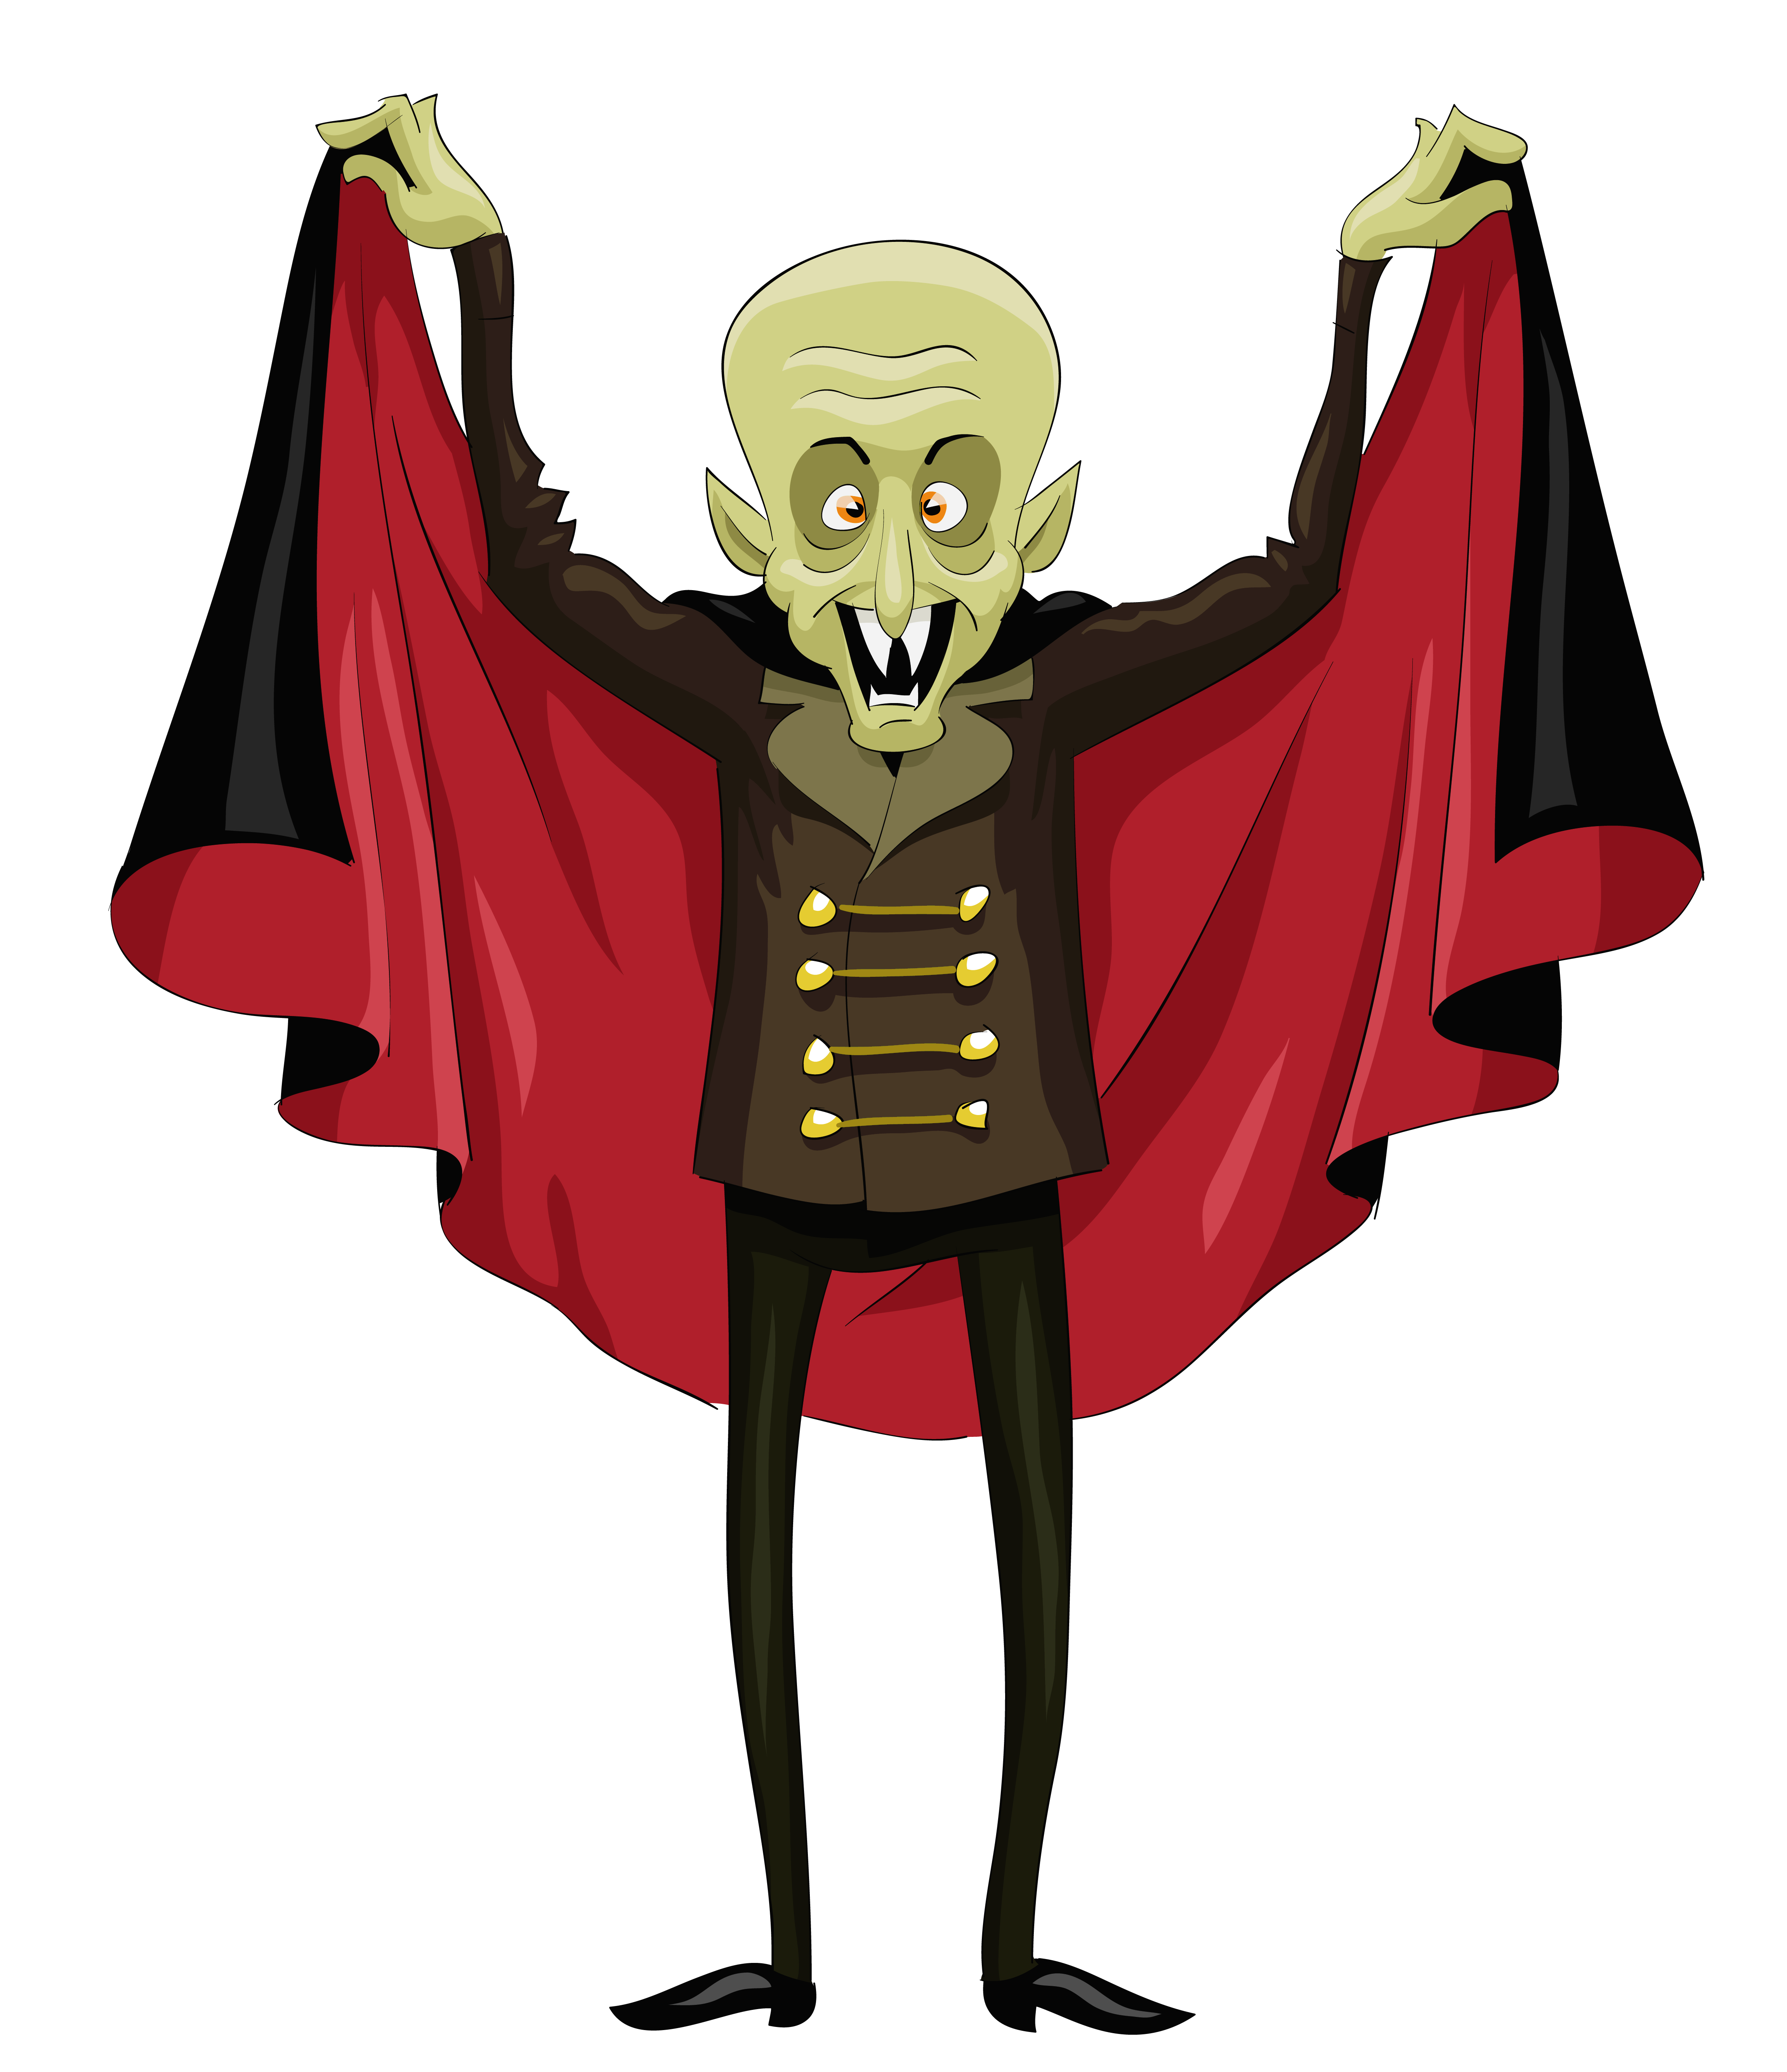 Halloween clipart character. Ugly vampire png gallery